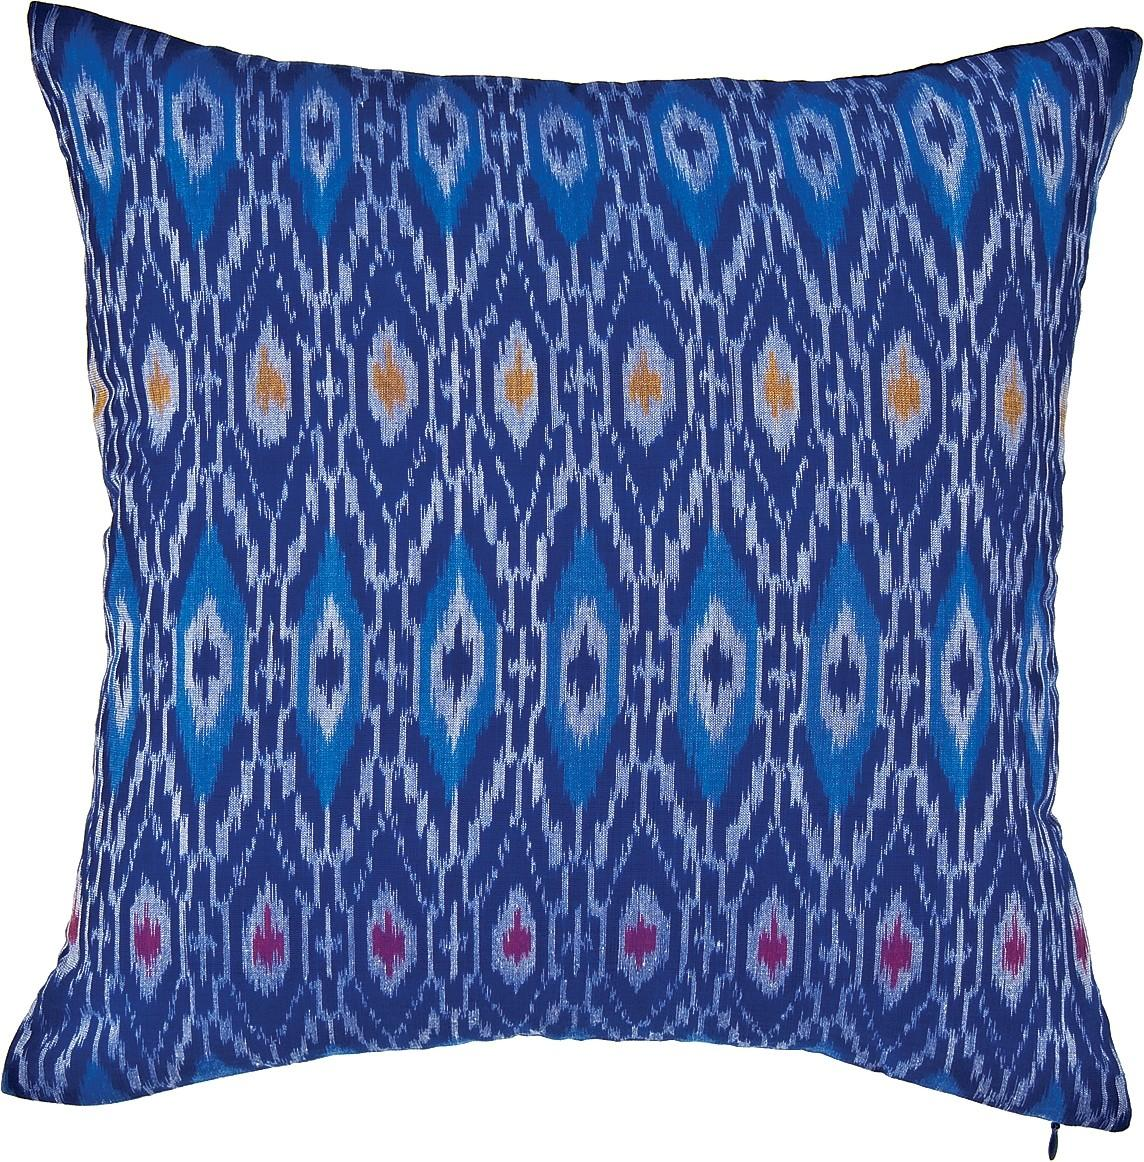 Blue Anusha Ikat Throw Pillow Luna Bazaar